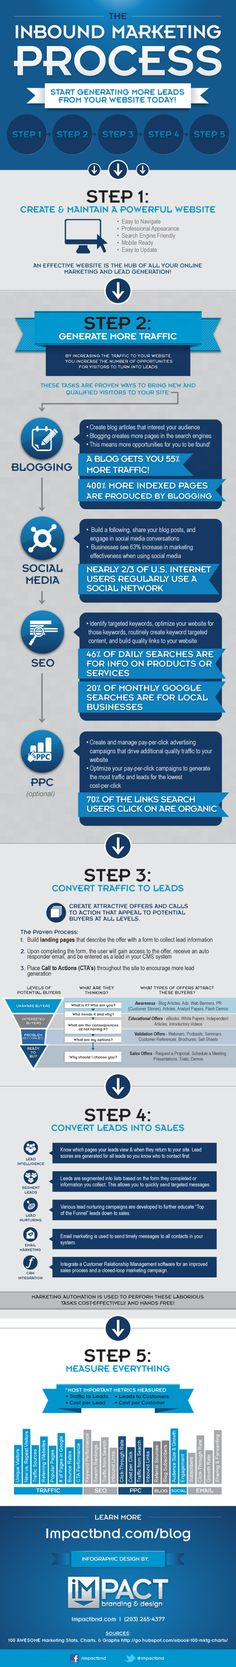 The Inbound Marketing Process (INFOGRAPHIC)